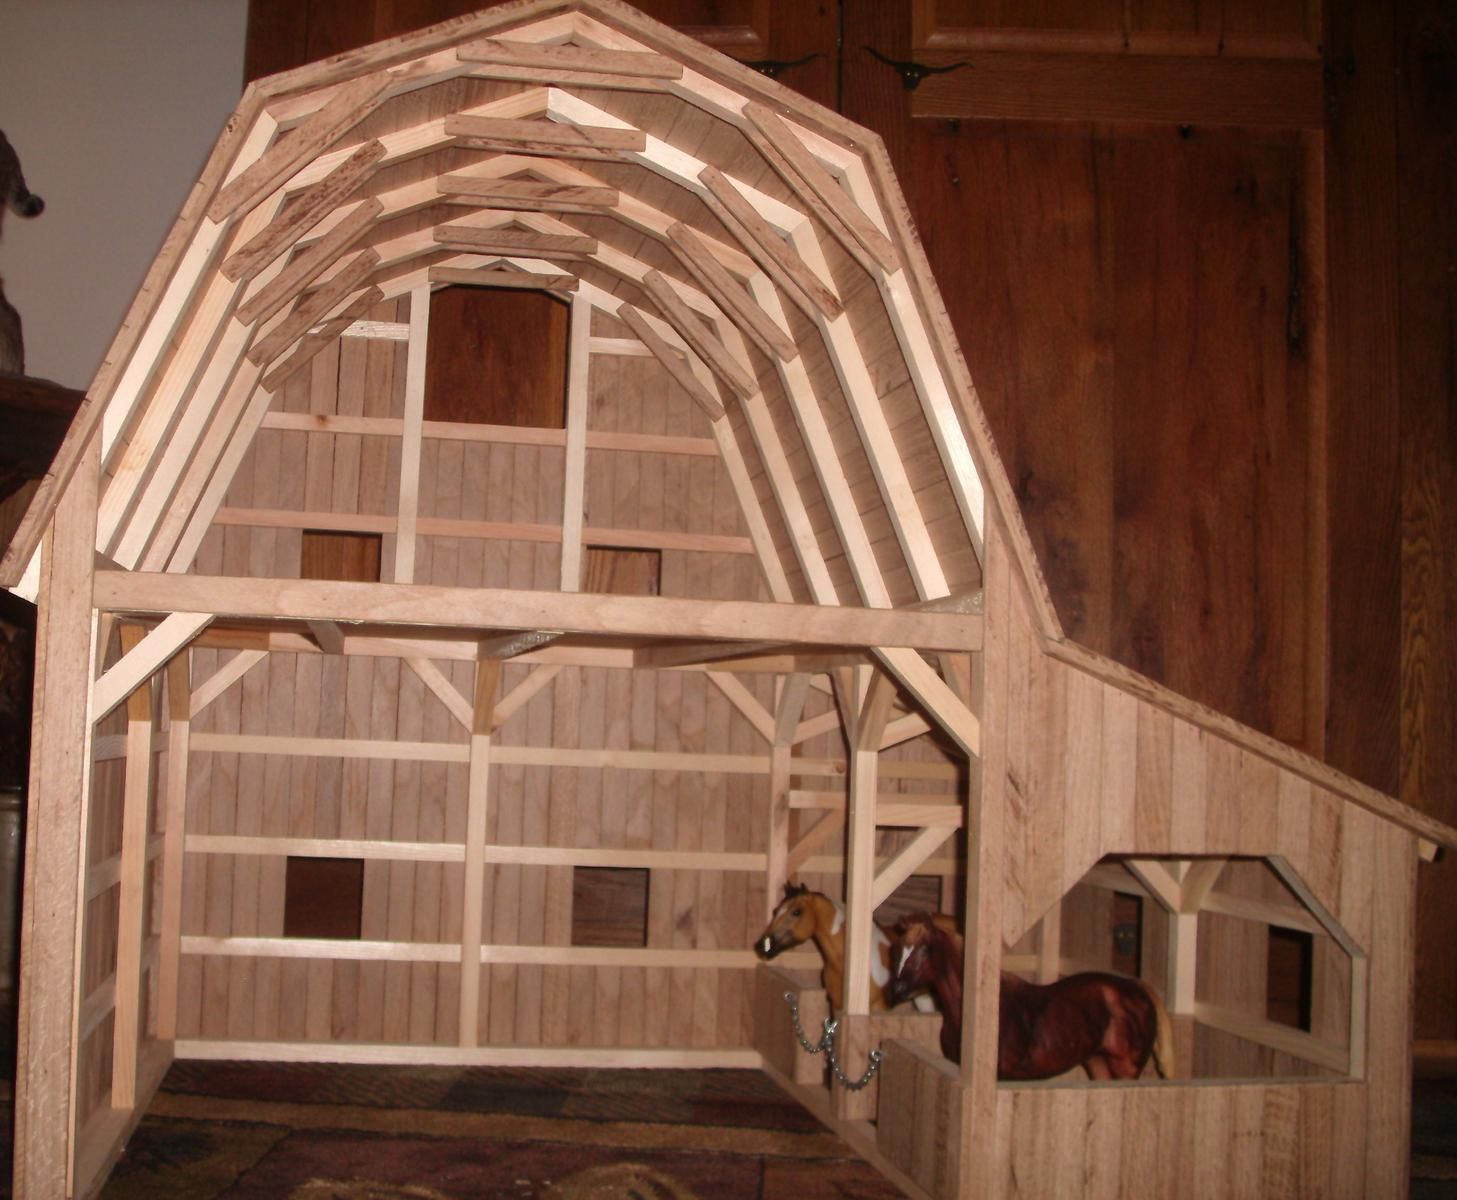 Hand Crafted Wooden Toy Barn 3 By Wild Cat Hollow